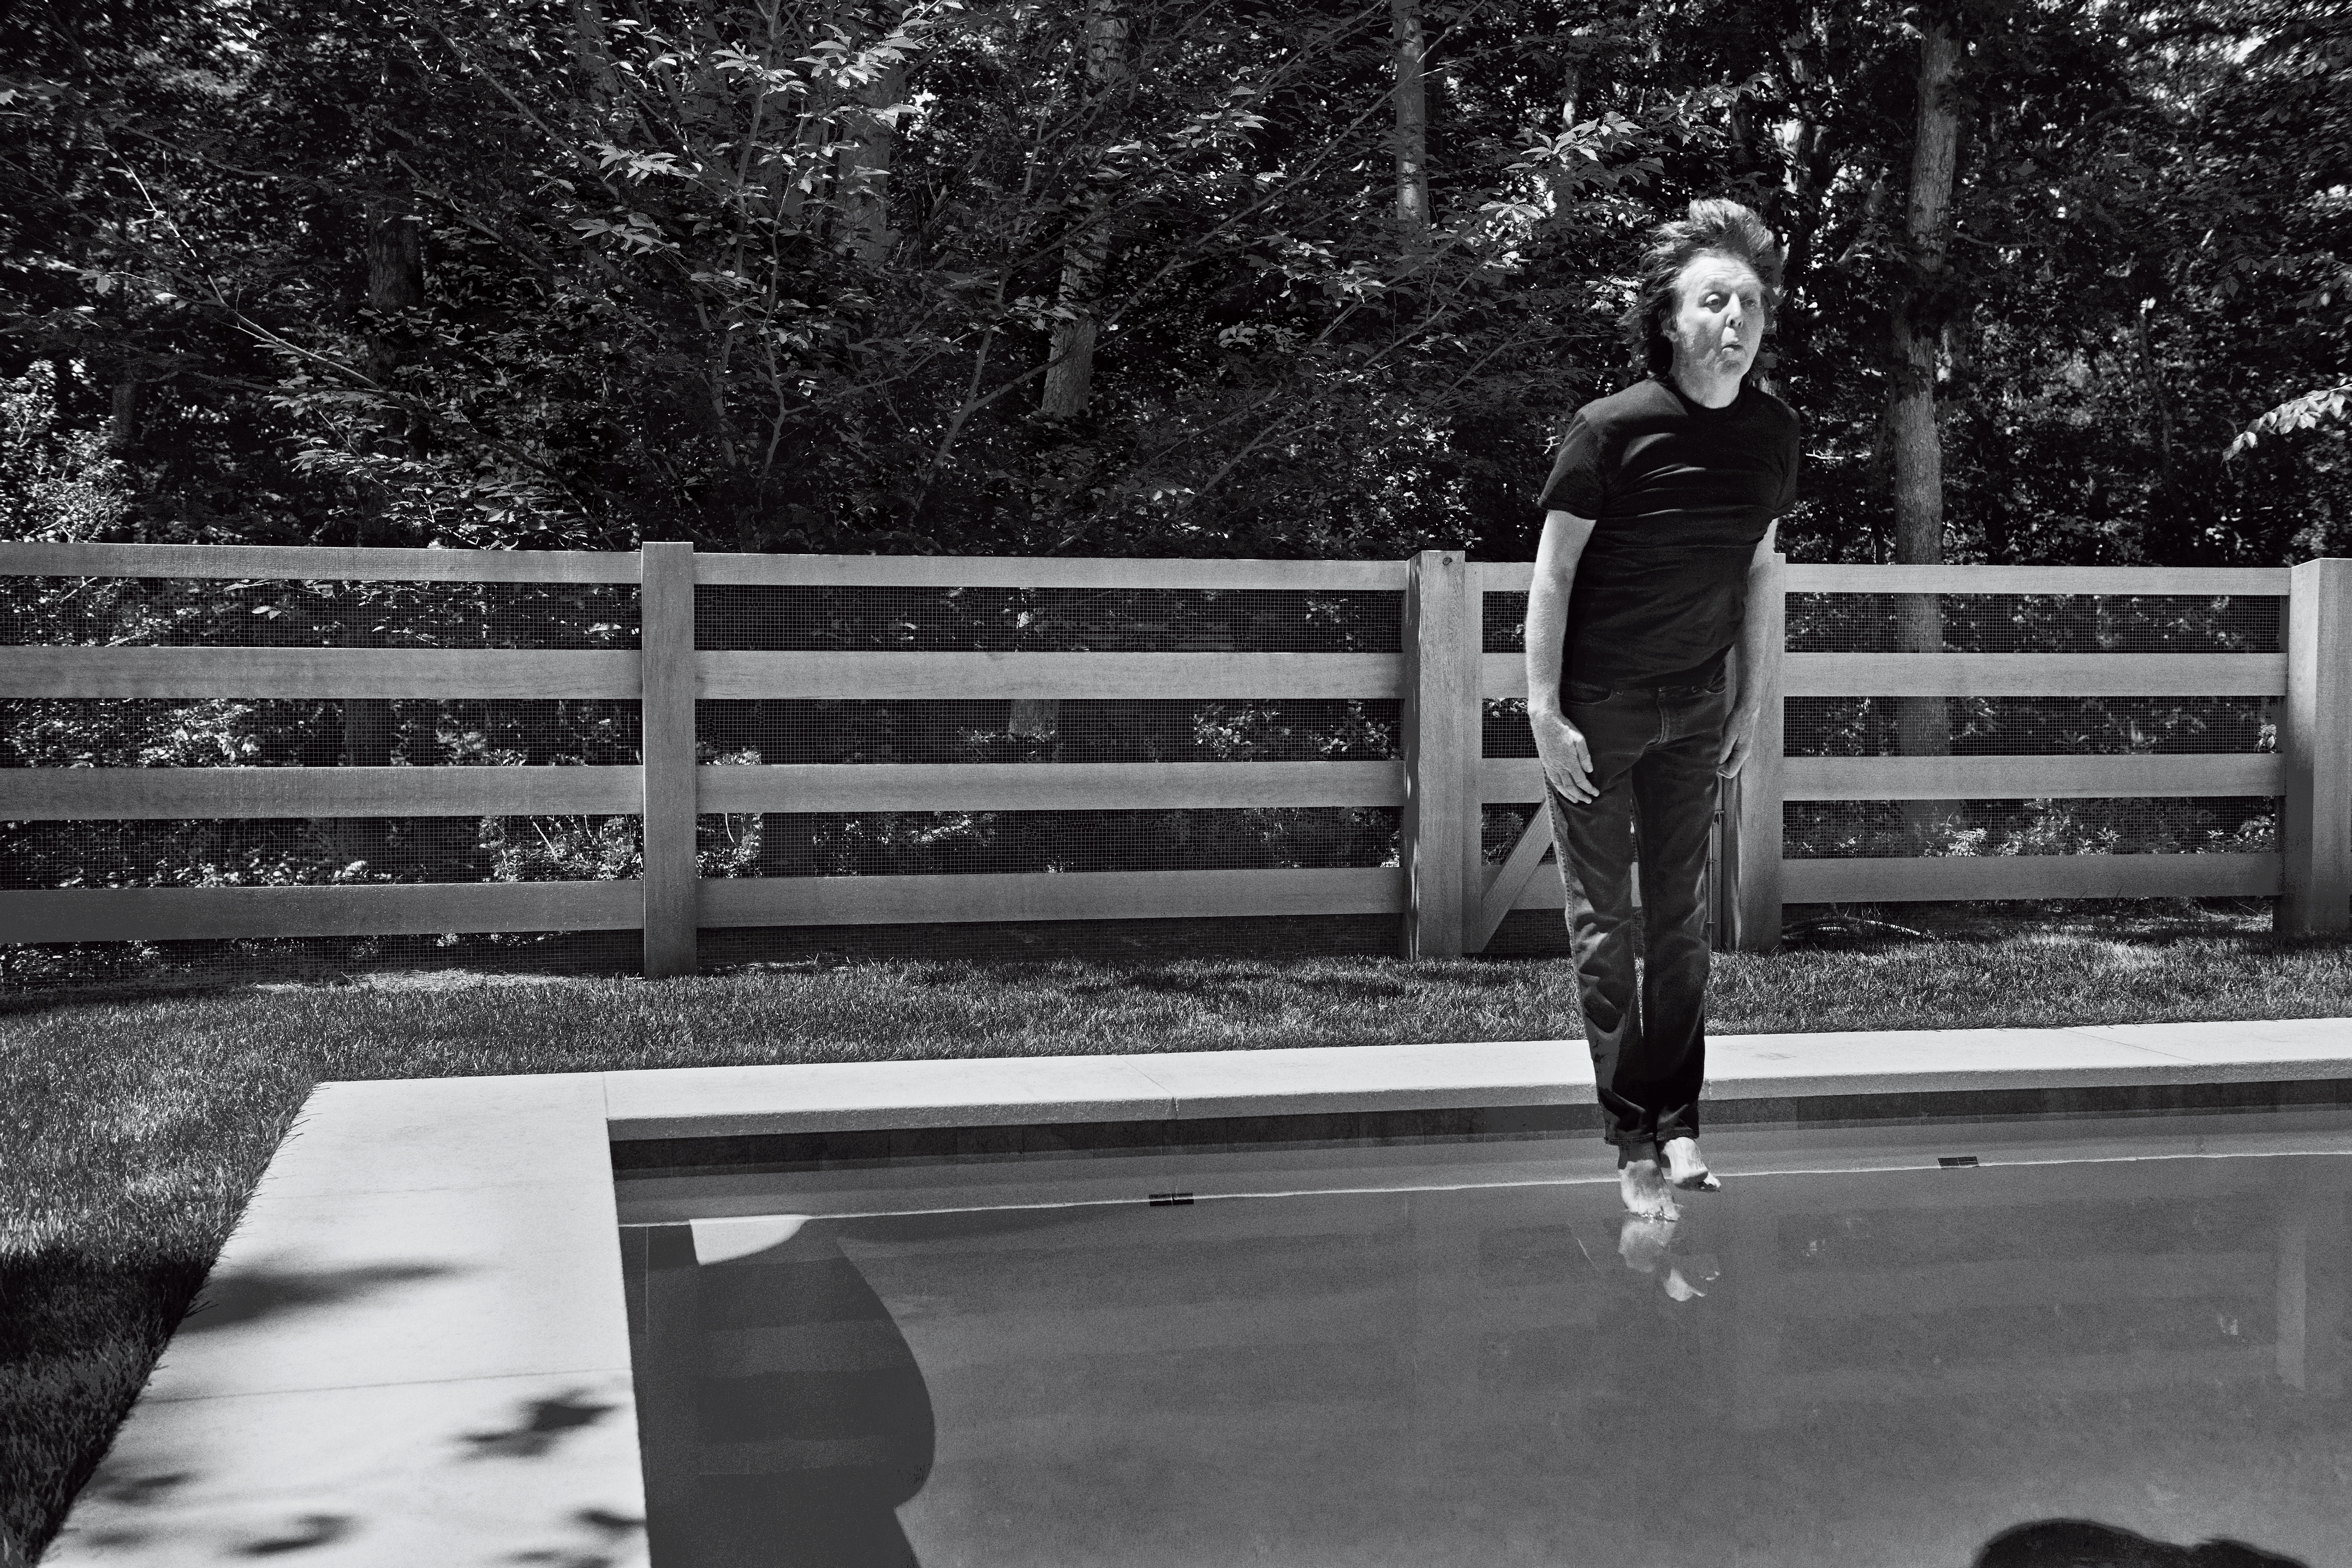 Paul McCartney Rolling Stone Interview 2016 Jumping Pool